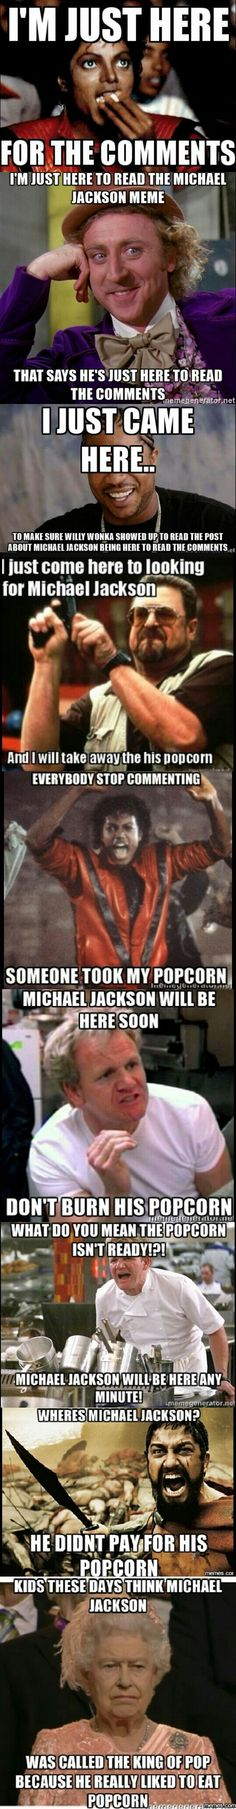 What if there was a conversation about popcorn? Michael Jackson started it!